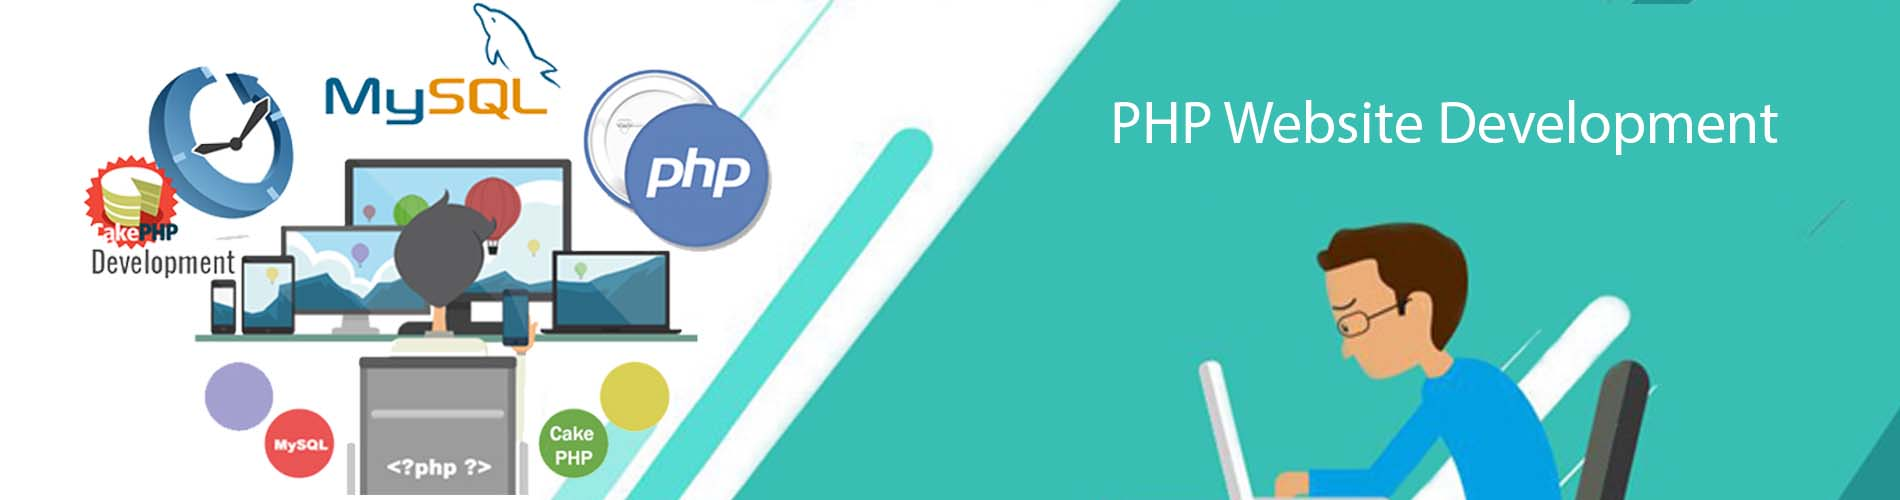 php-website-development-company